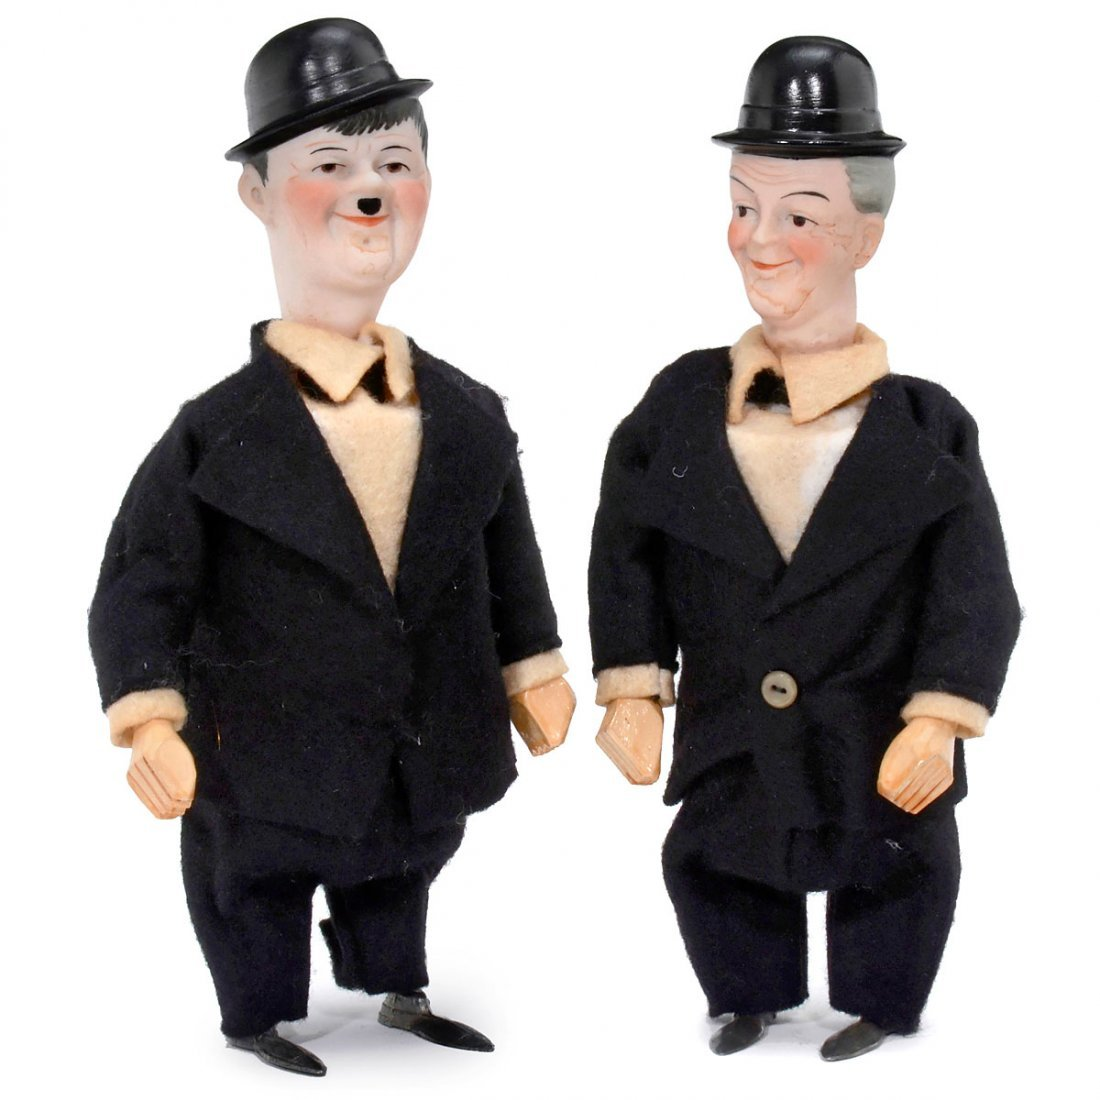 Rare Laurel and Hardy Clockwork Toys by Hertwig & Co.,